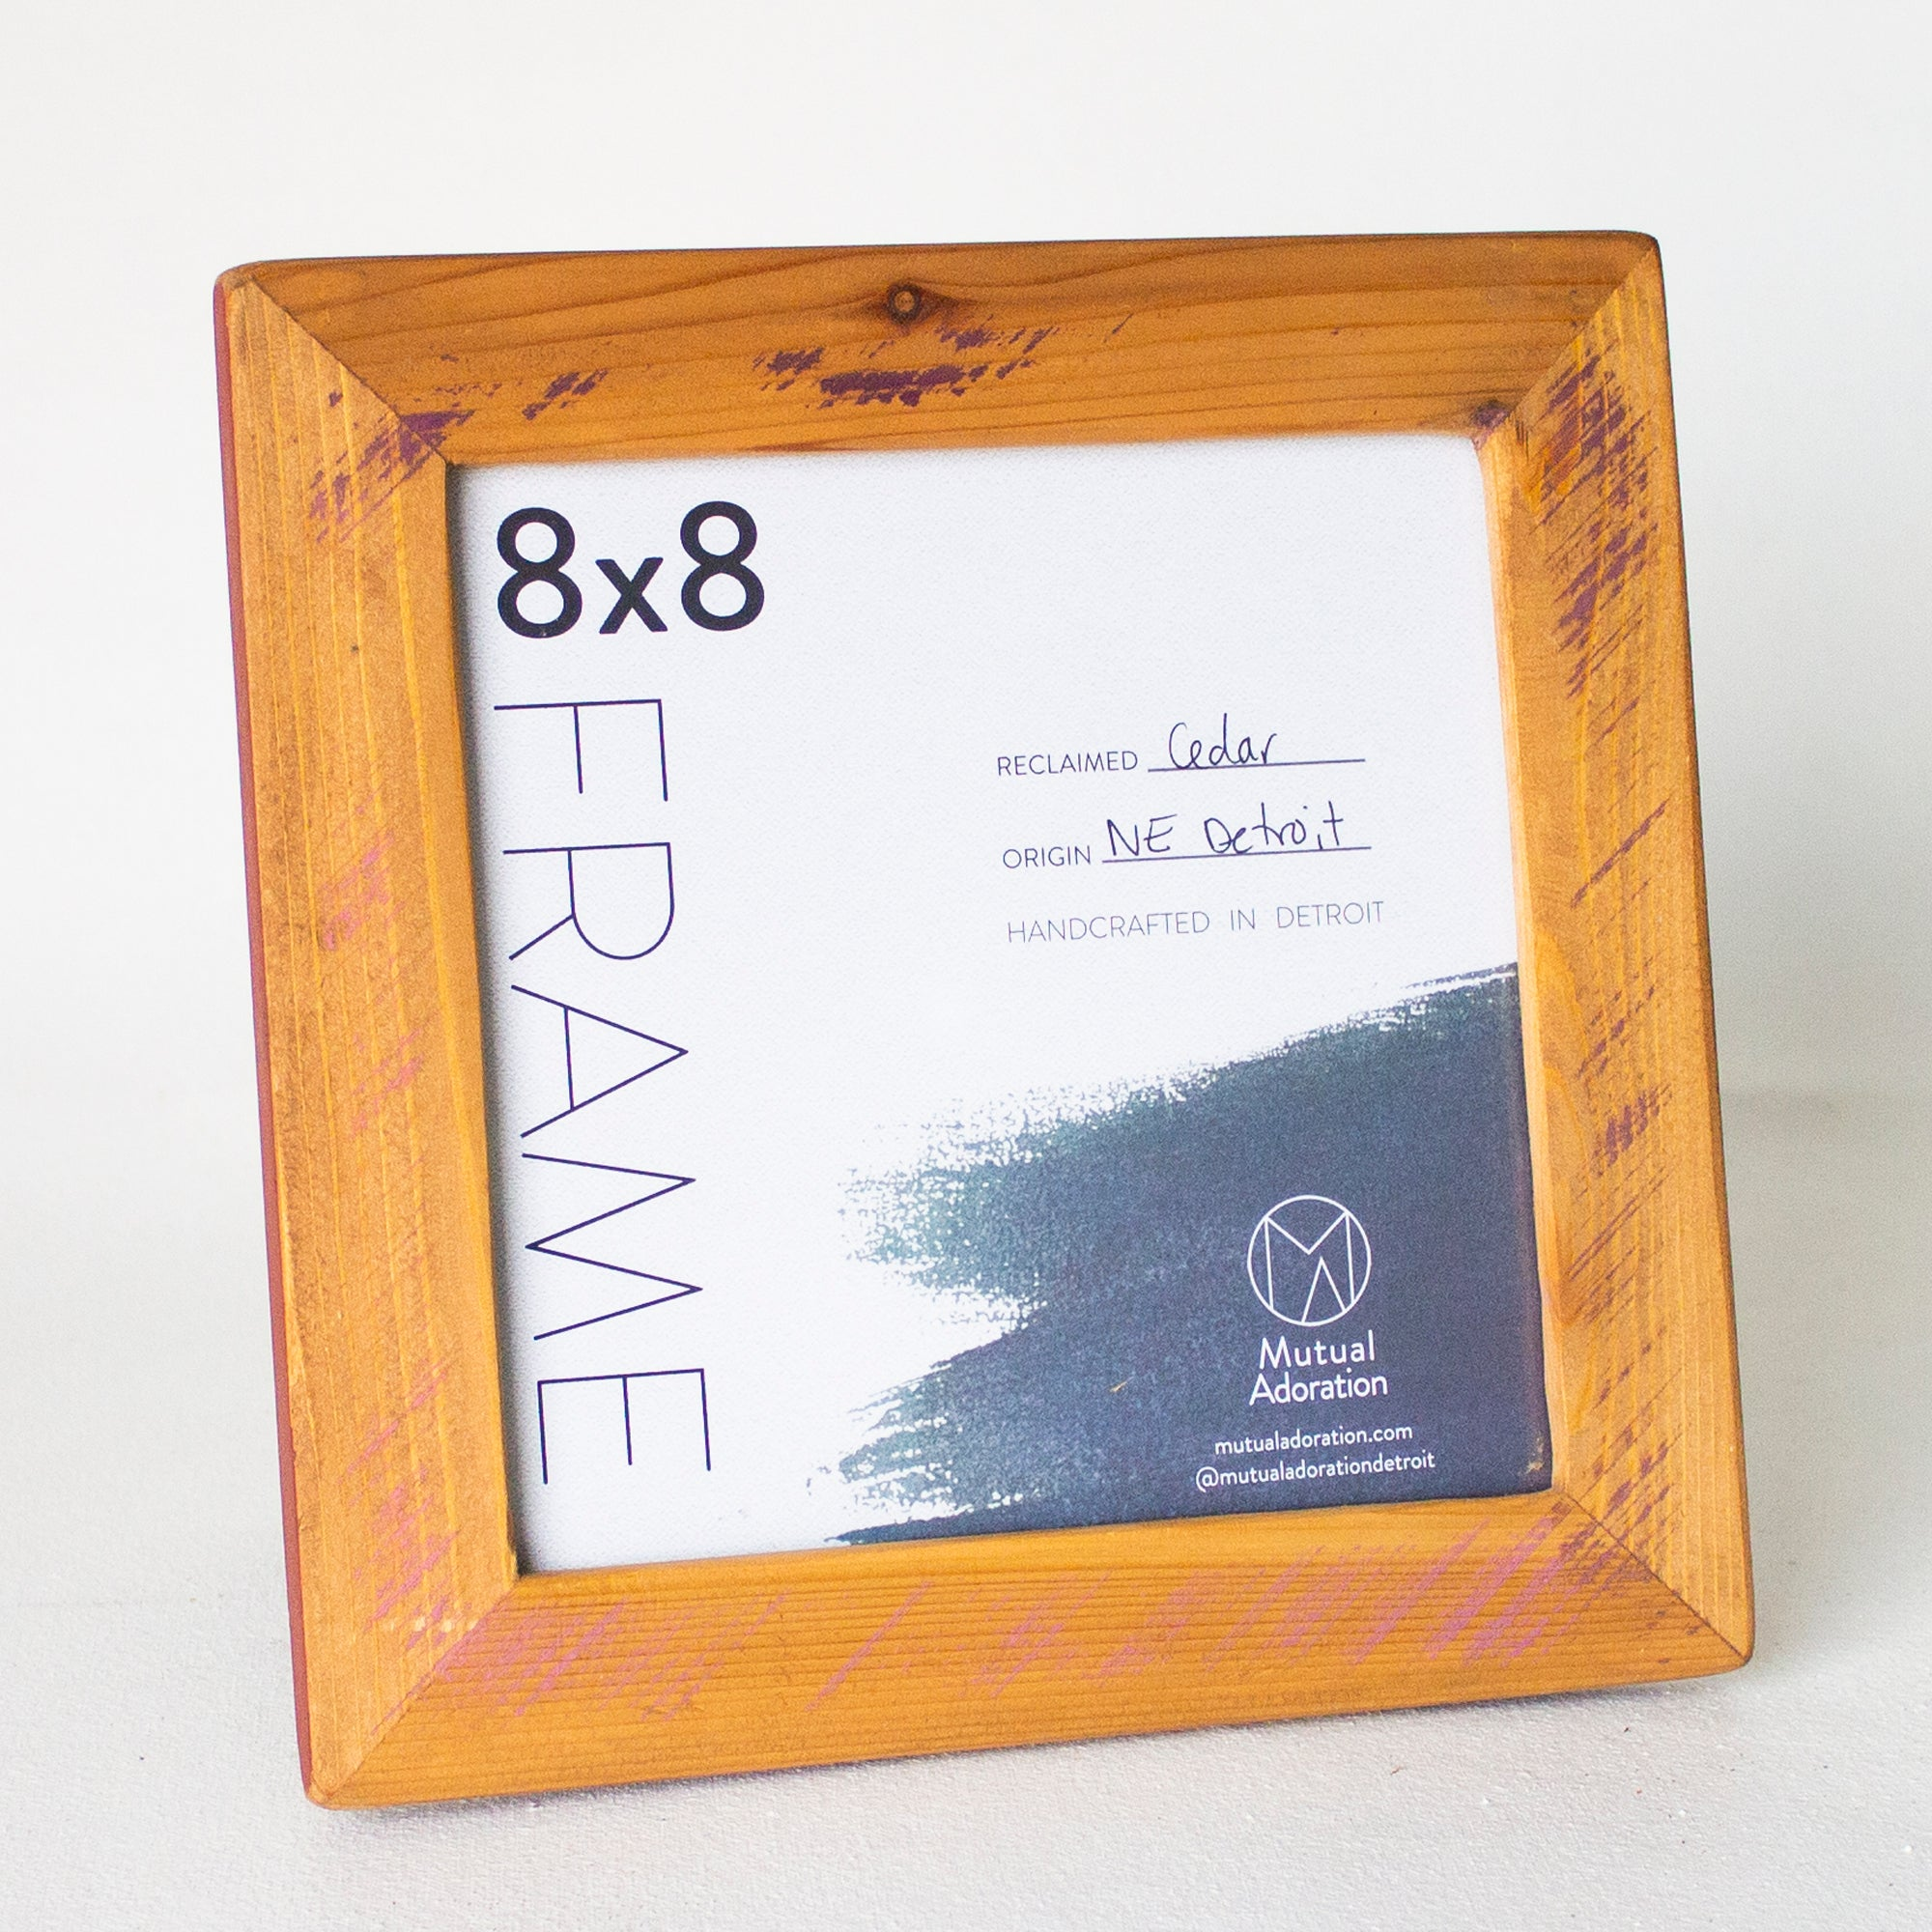 8x8 Reclaimed Cedar Picture Frame | Light Stain with Lavender, Mutual Adoration, Handcrafted Home Goods and Gifts